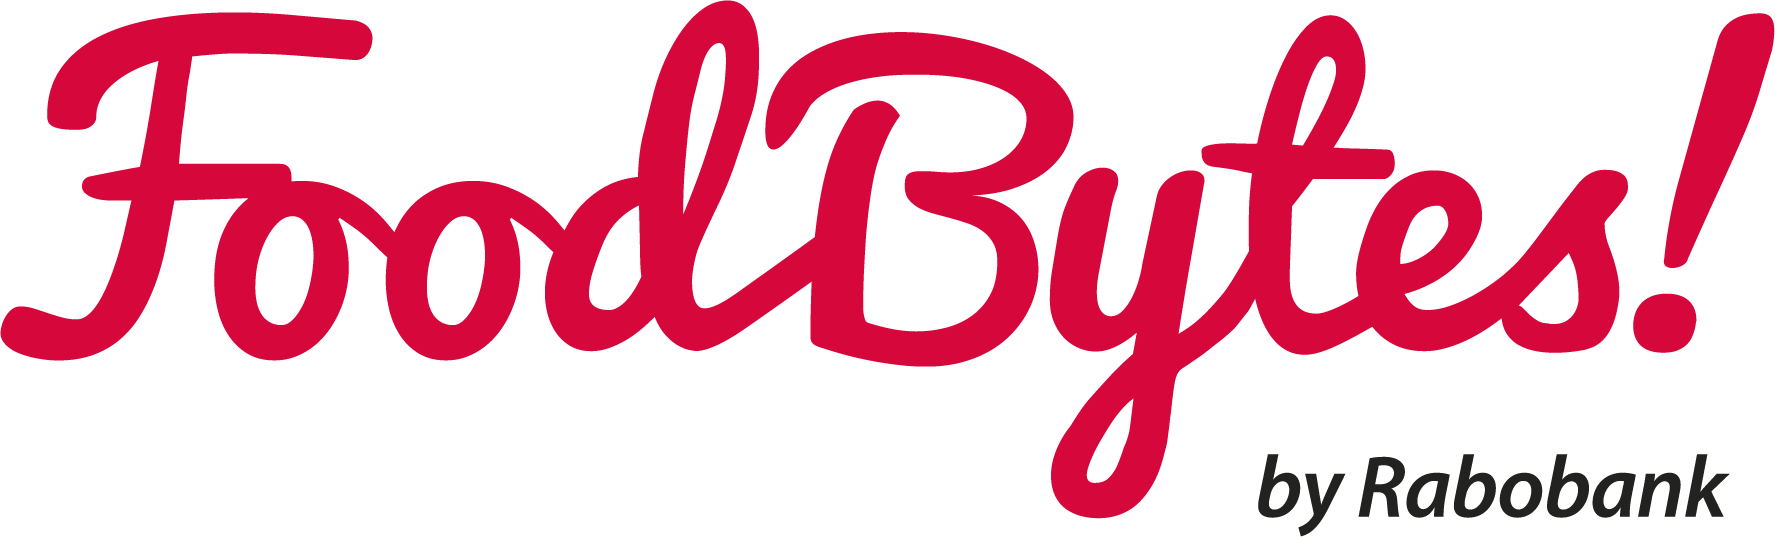 2. FoodBytes! by Rabobank Red.png